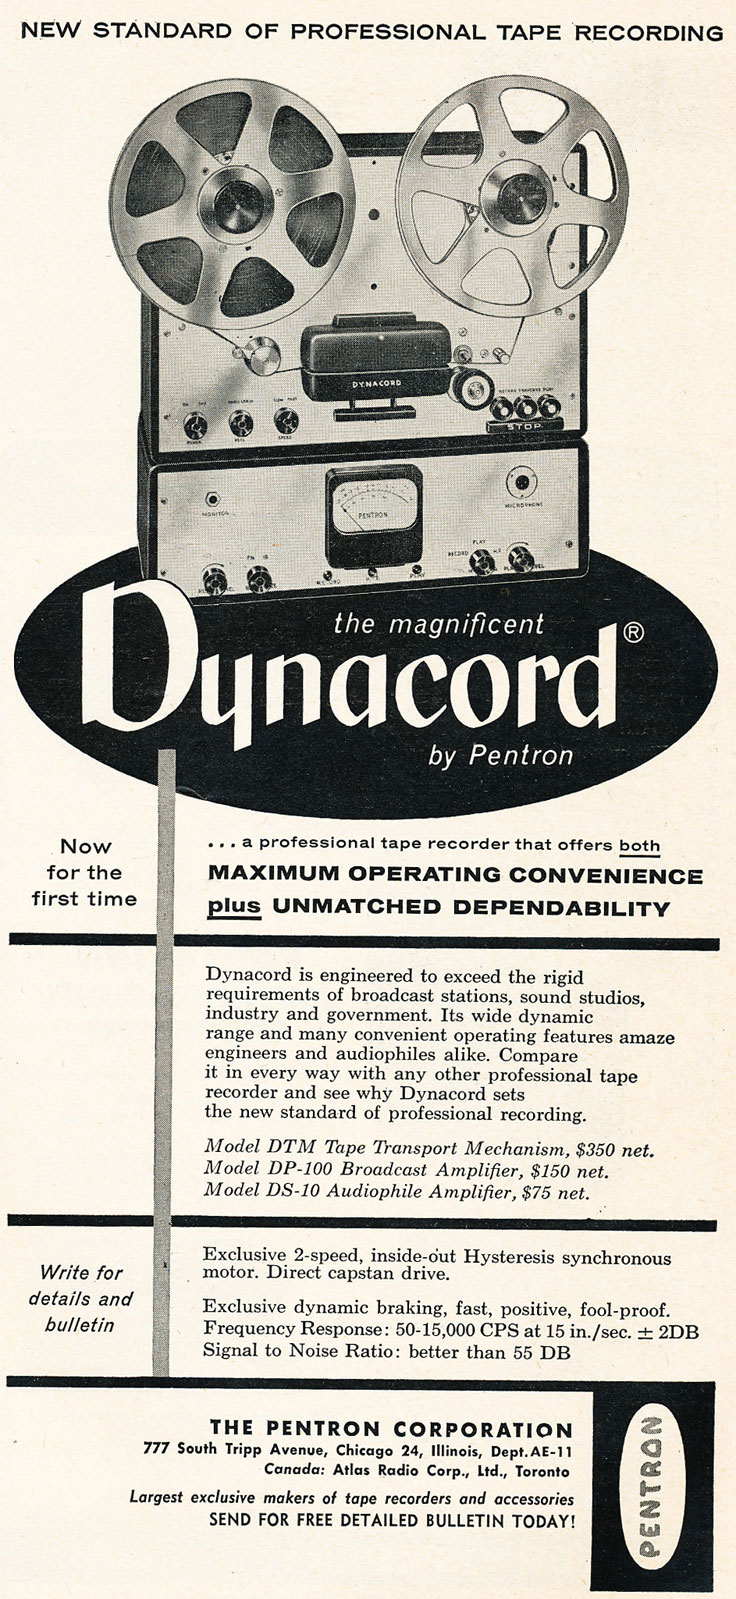 1954 ad for the Pentron Dynacord reel to reel tape recorder in   Reel2ReelTexas.com's vintage recording collection